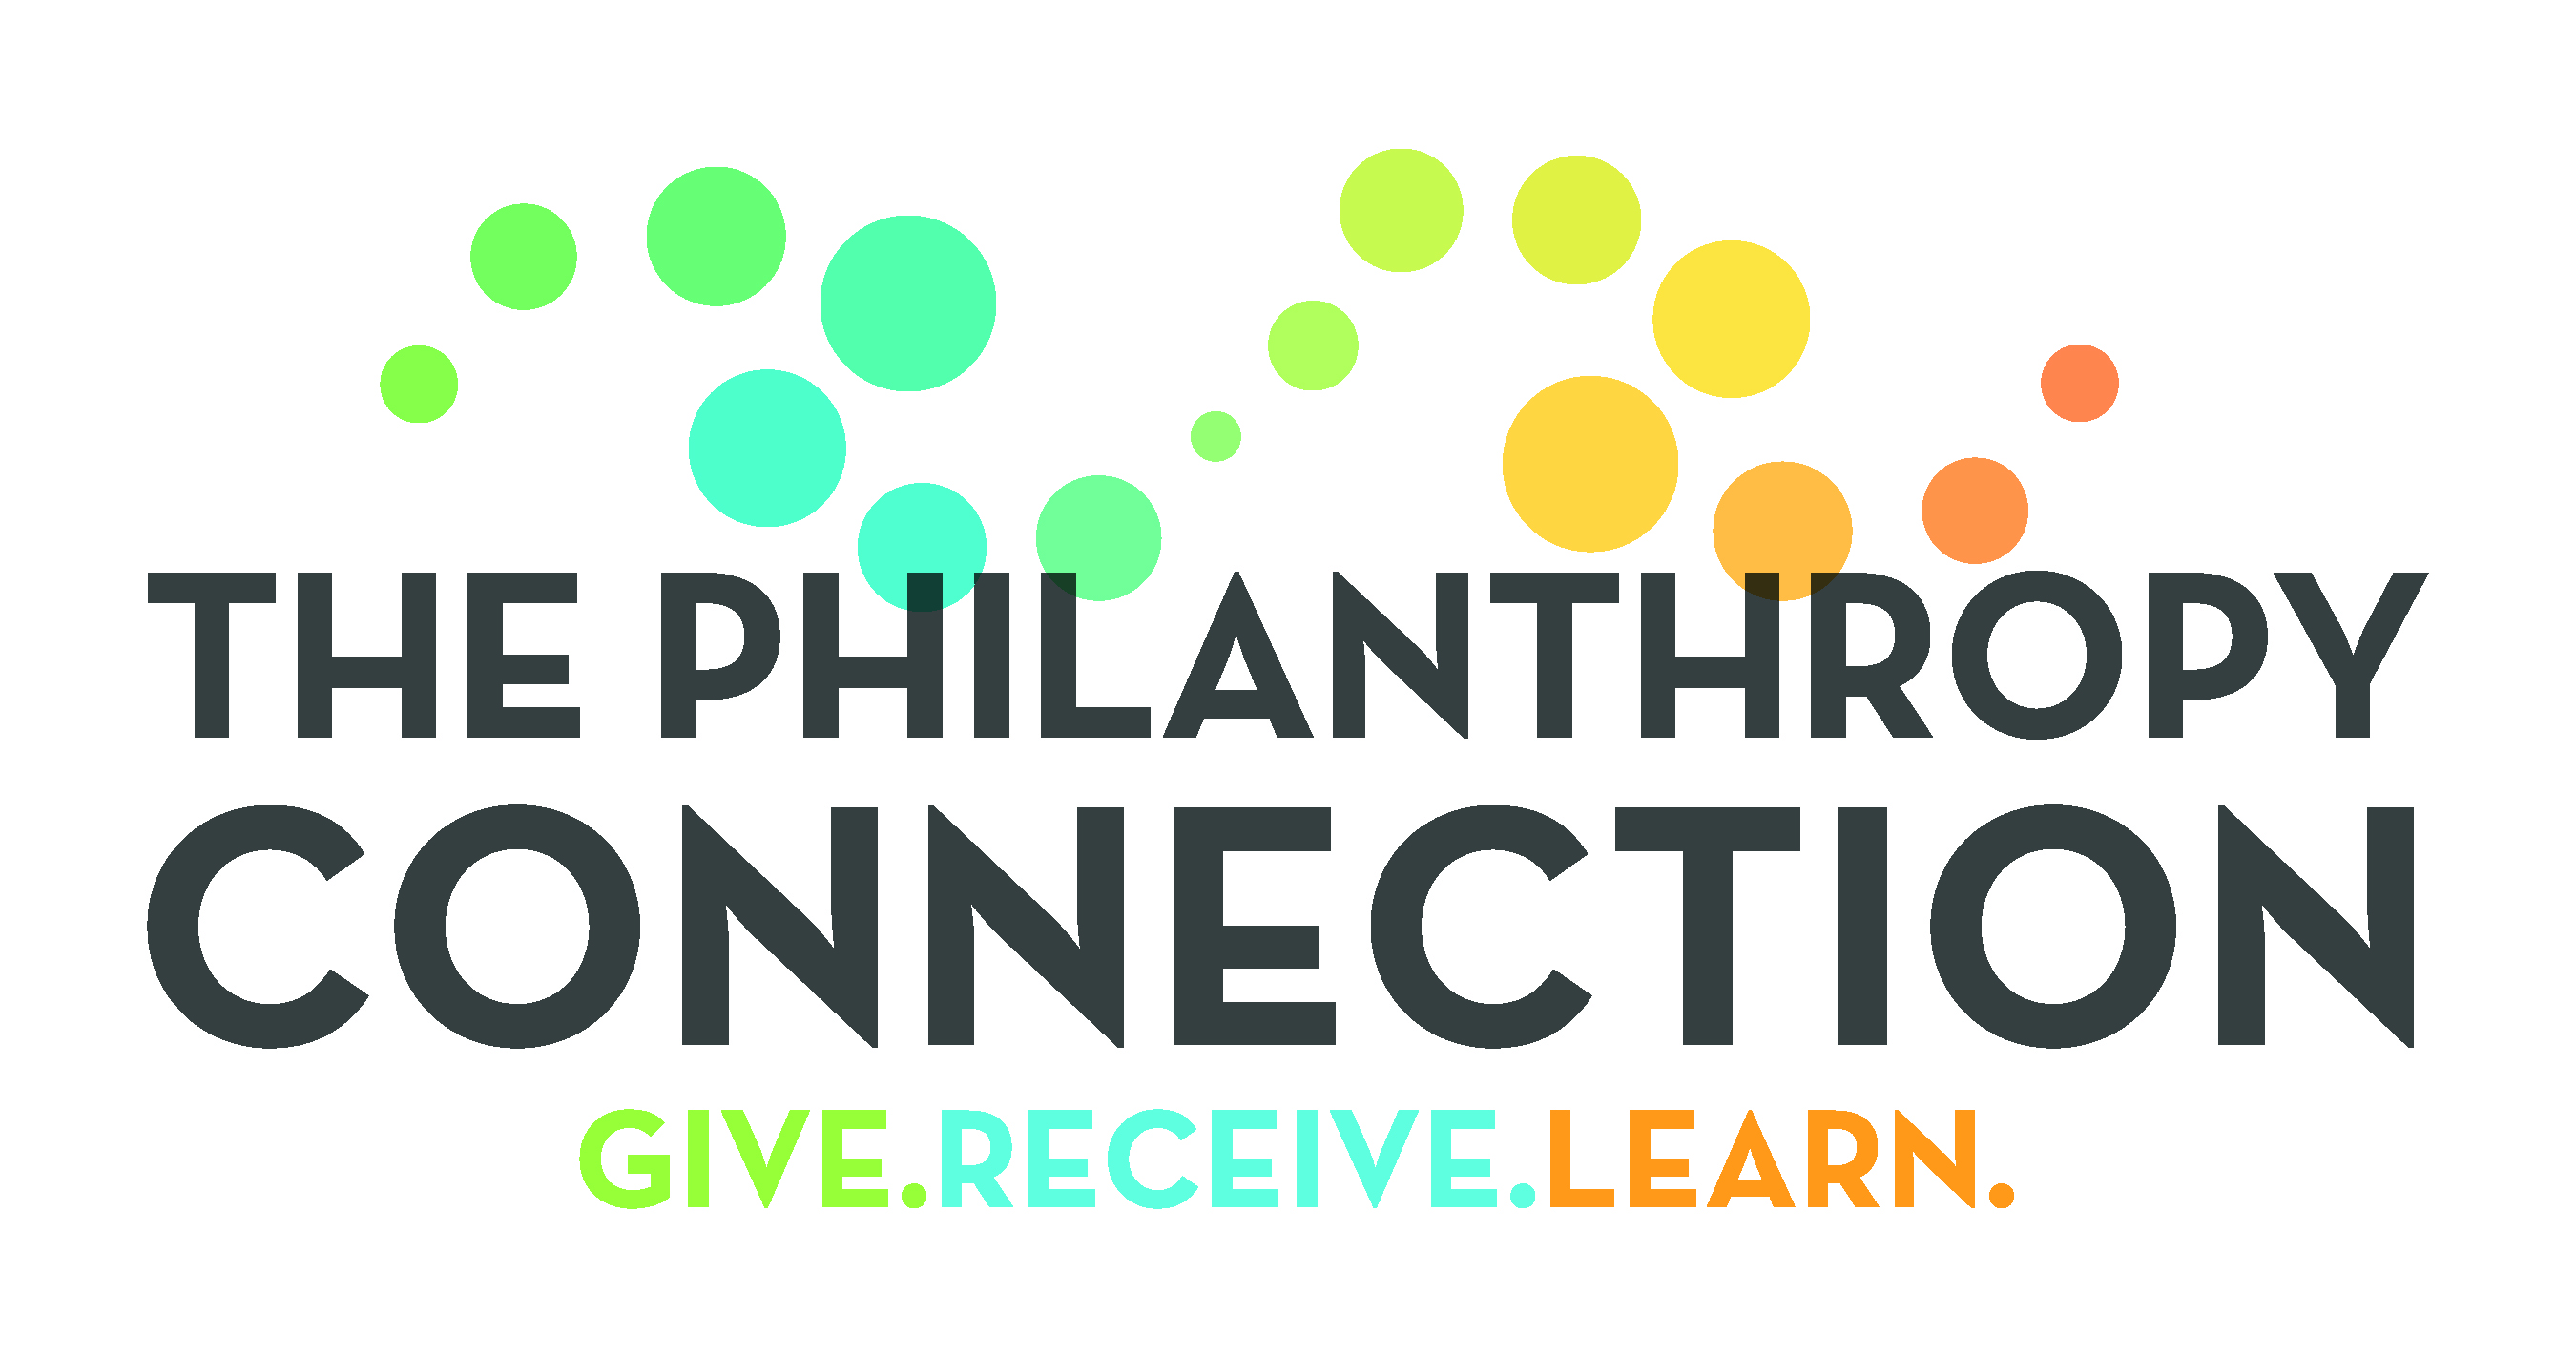 The_Philanthropy_Connection_logo